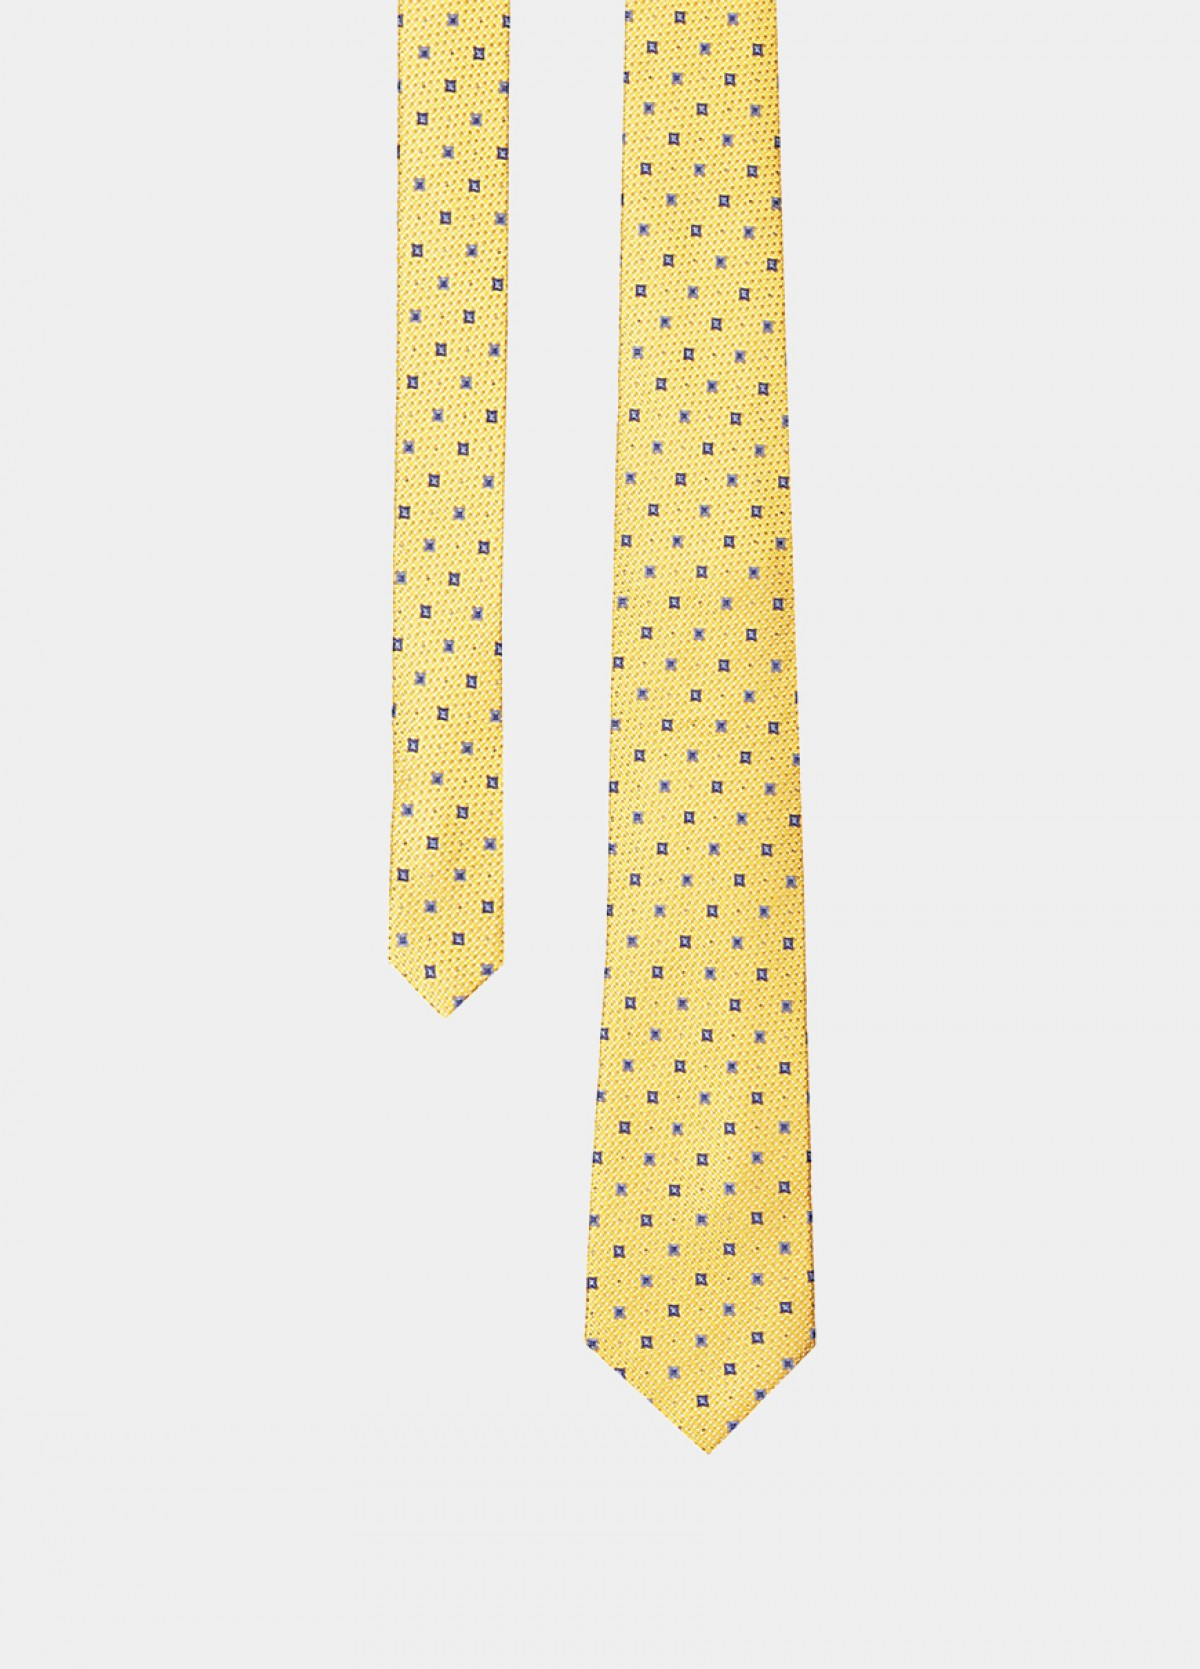 The Yellow Stain Resistant Tie